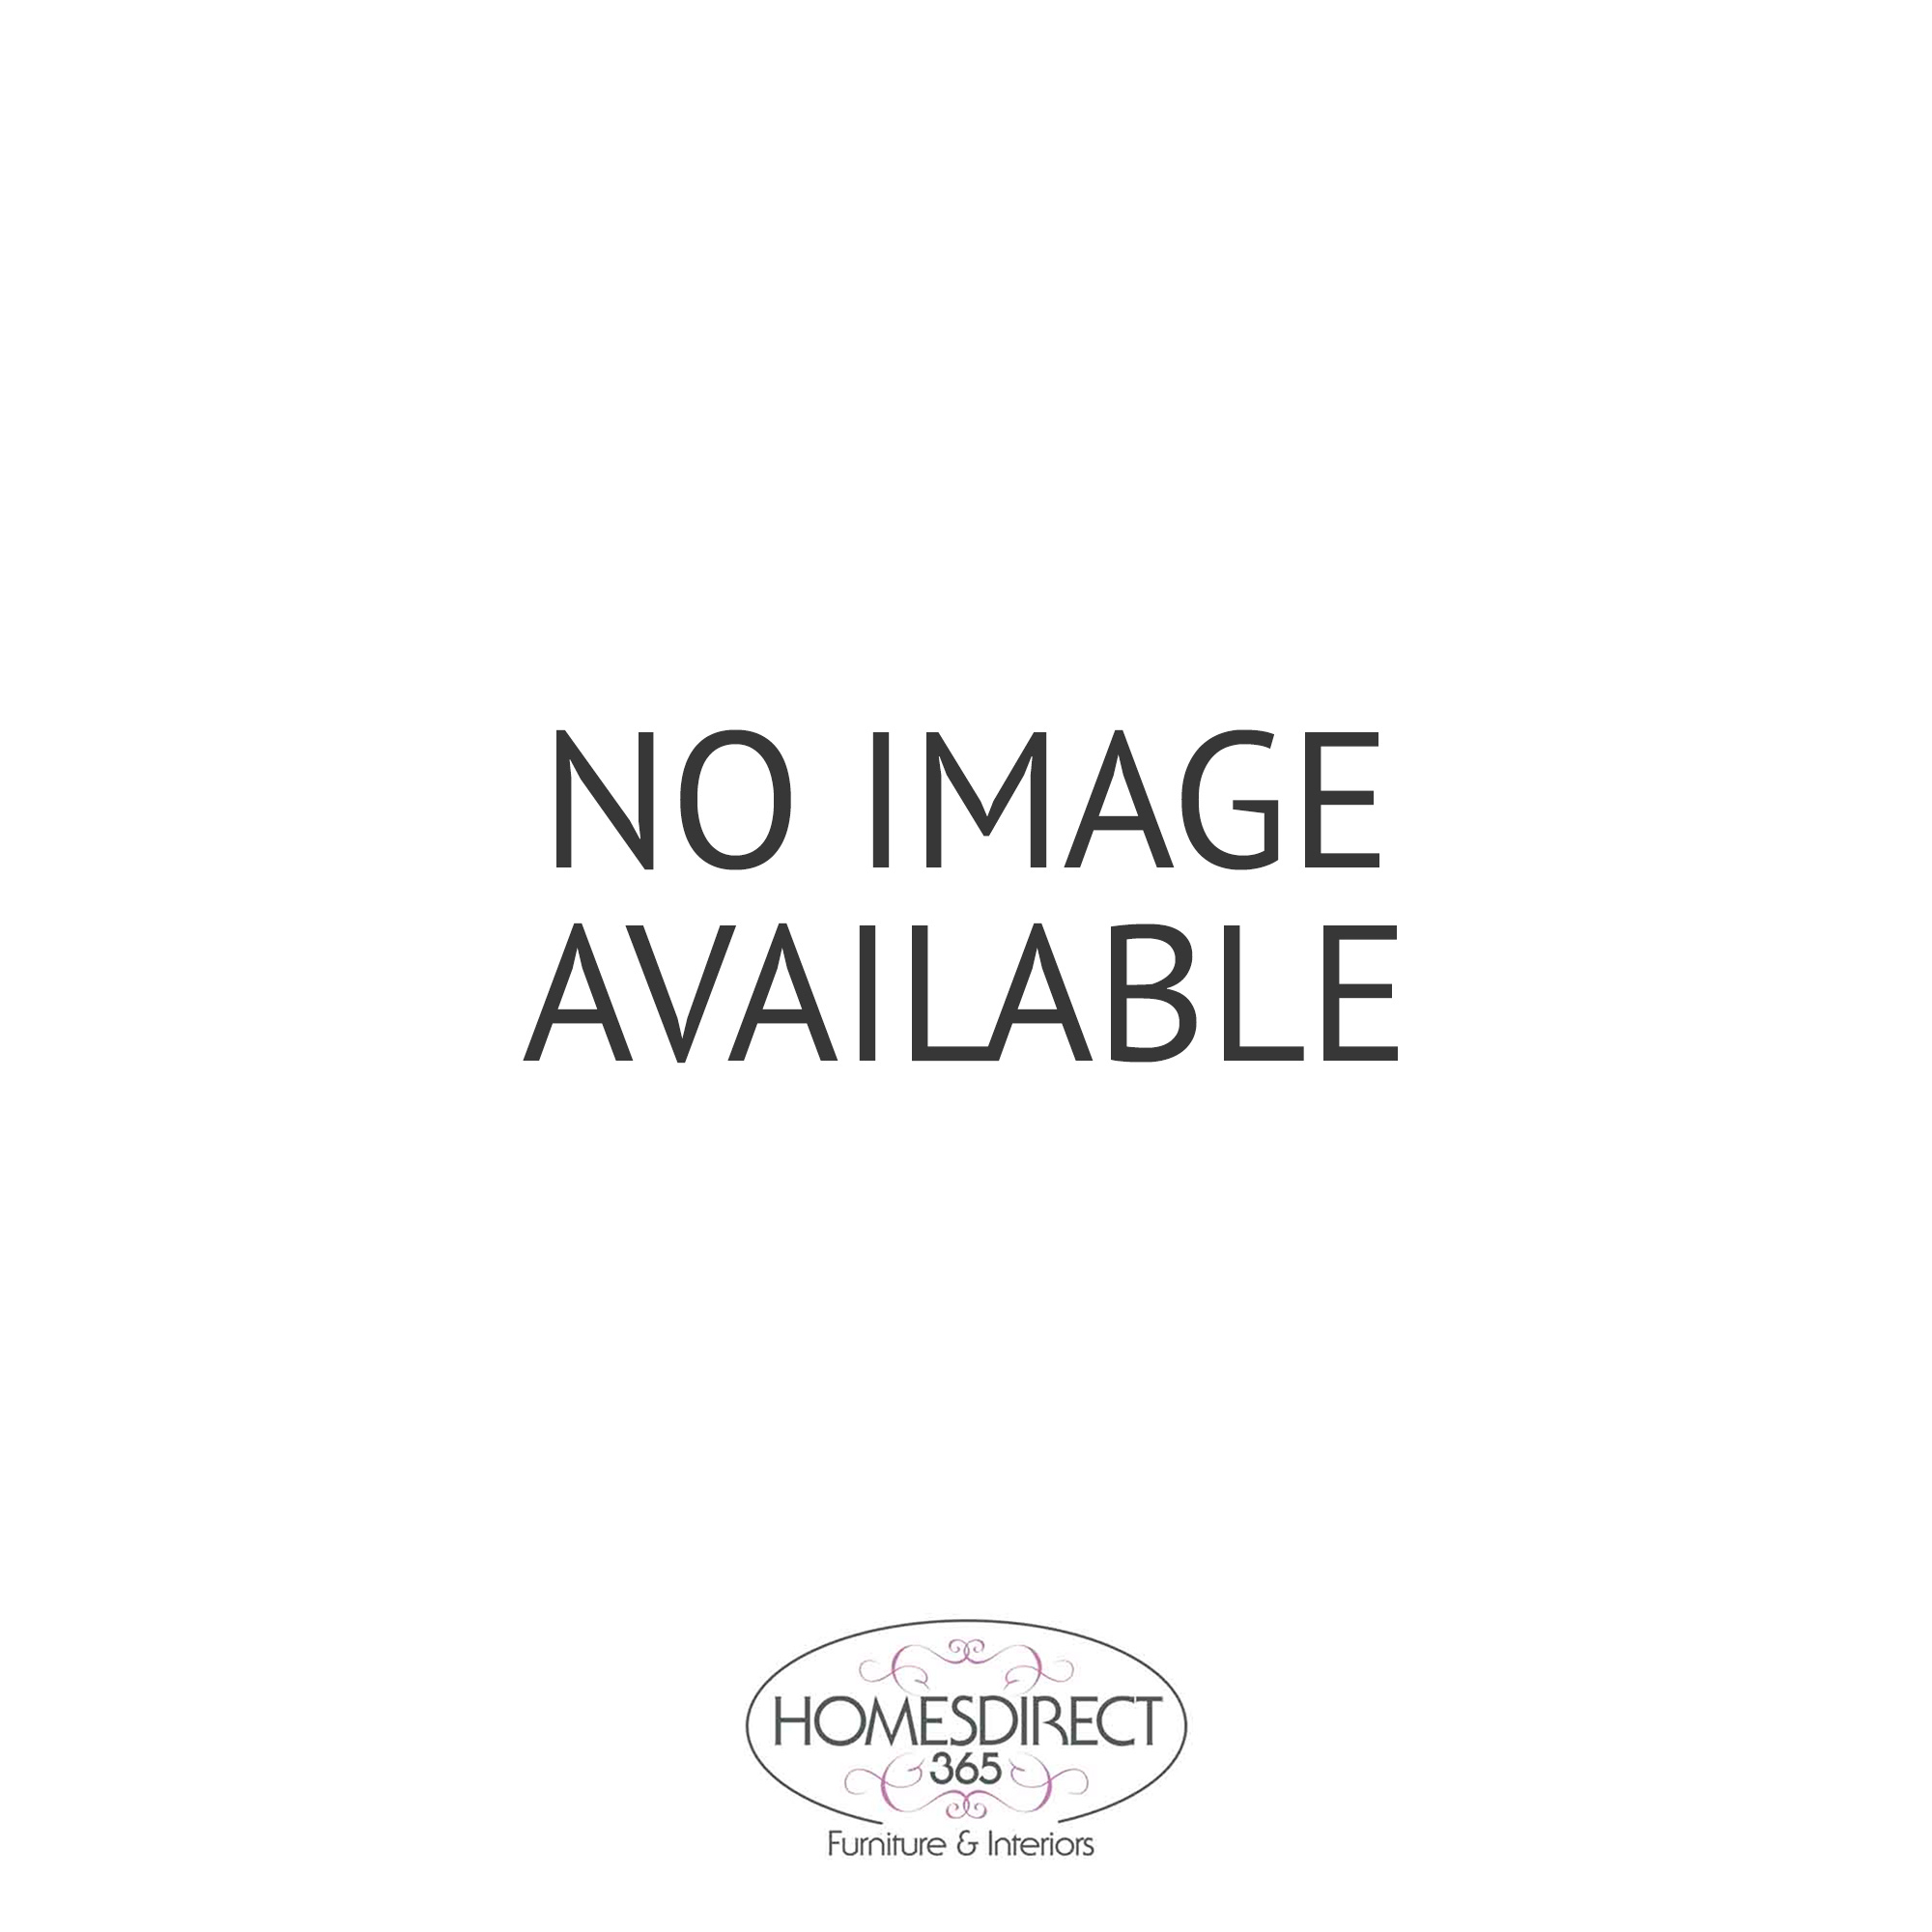 https://www.homesdirect365.co.uk/images/eames-style-dining-chair-p38433-24927_medium.jpg